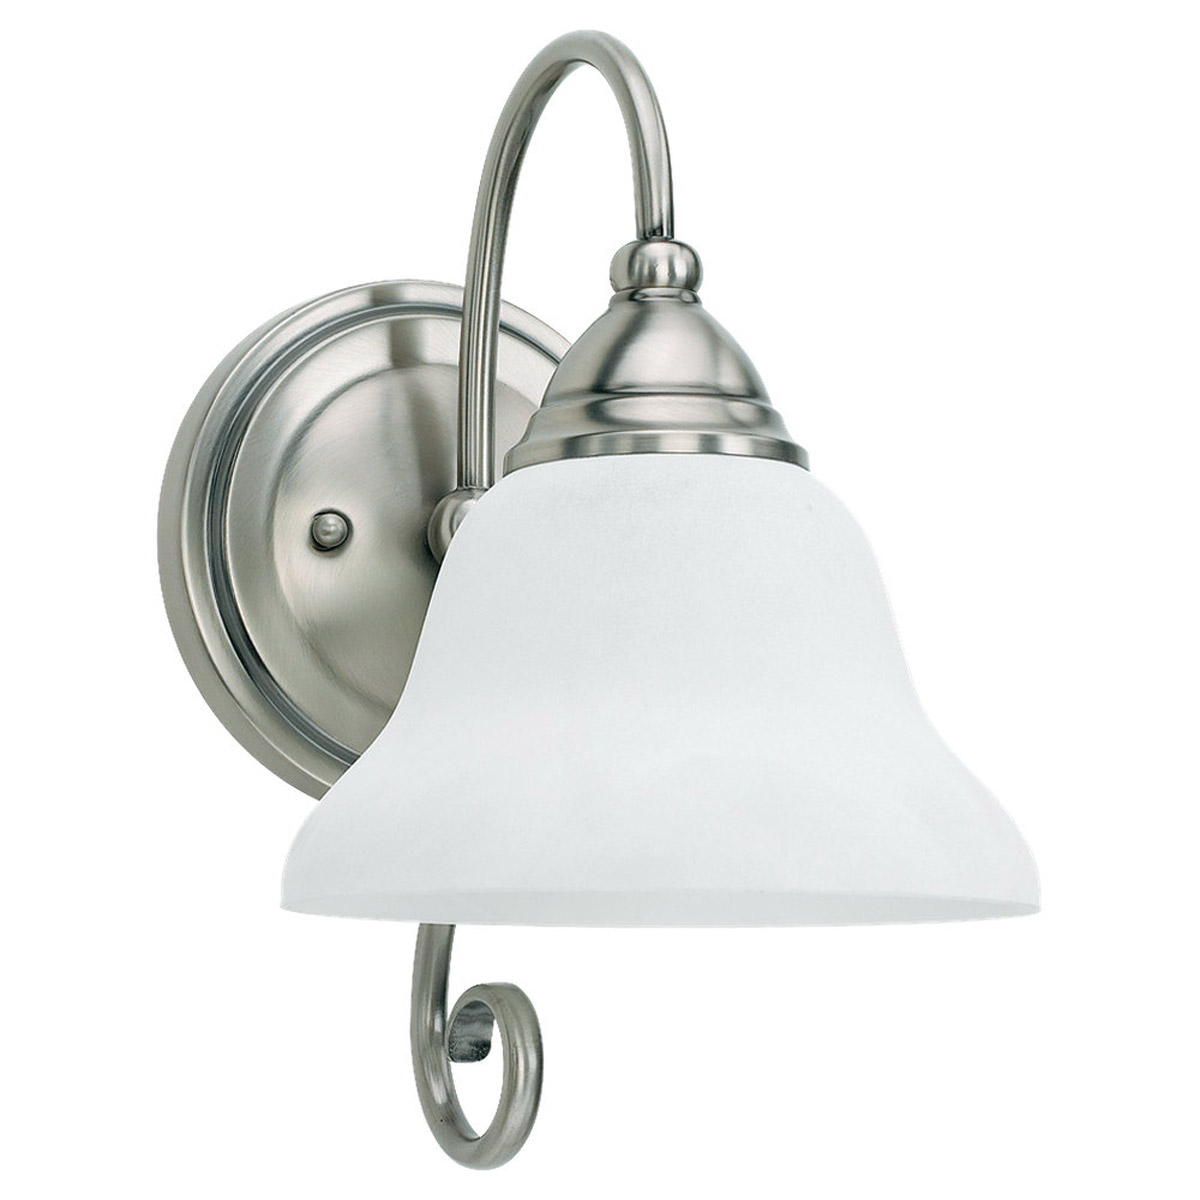 Sea Gull Lighting Montclaire 1 Light Bath Vanity in Antique Brushed Nickel 41105BLE-965